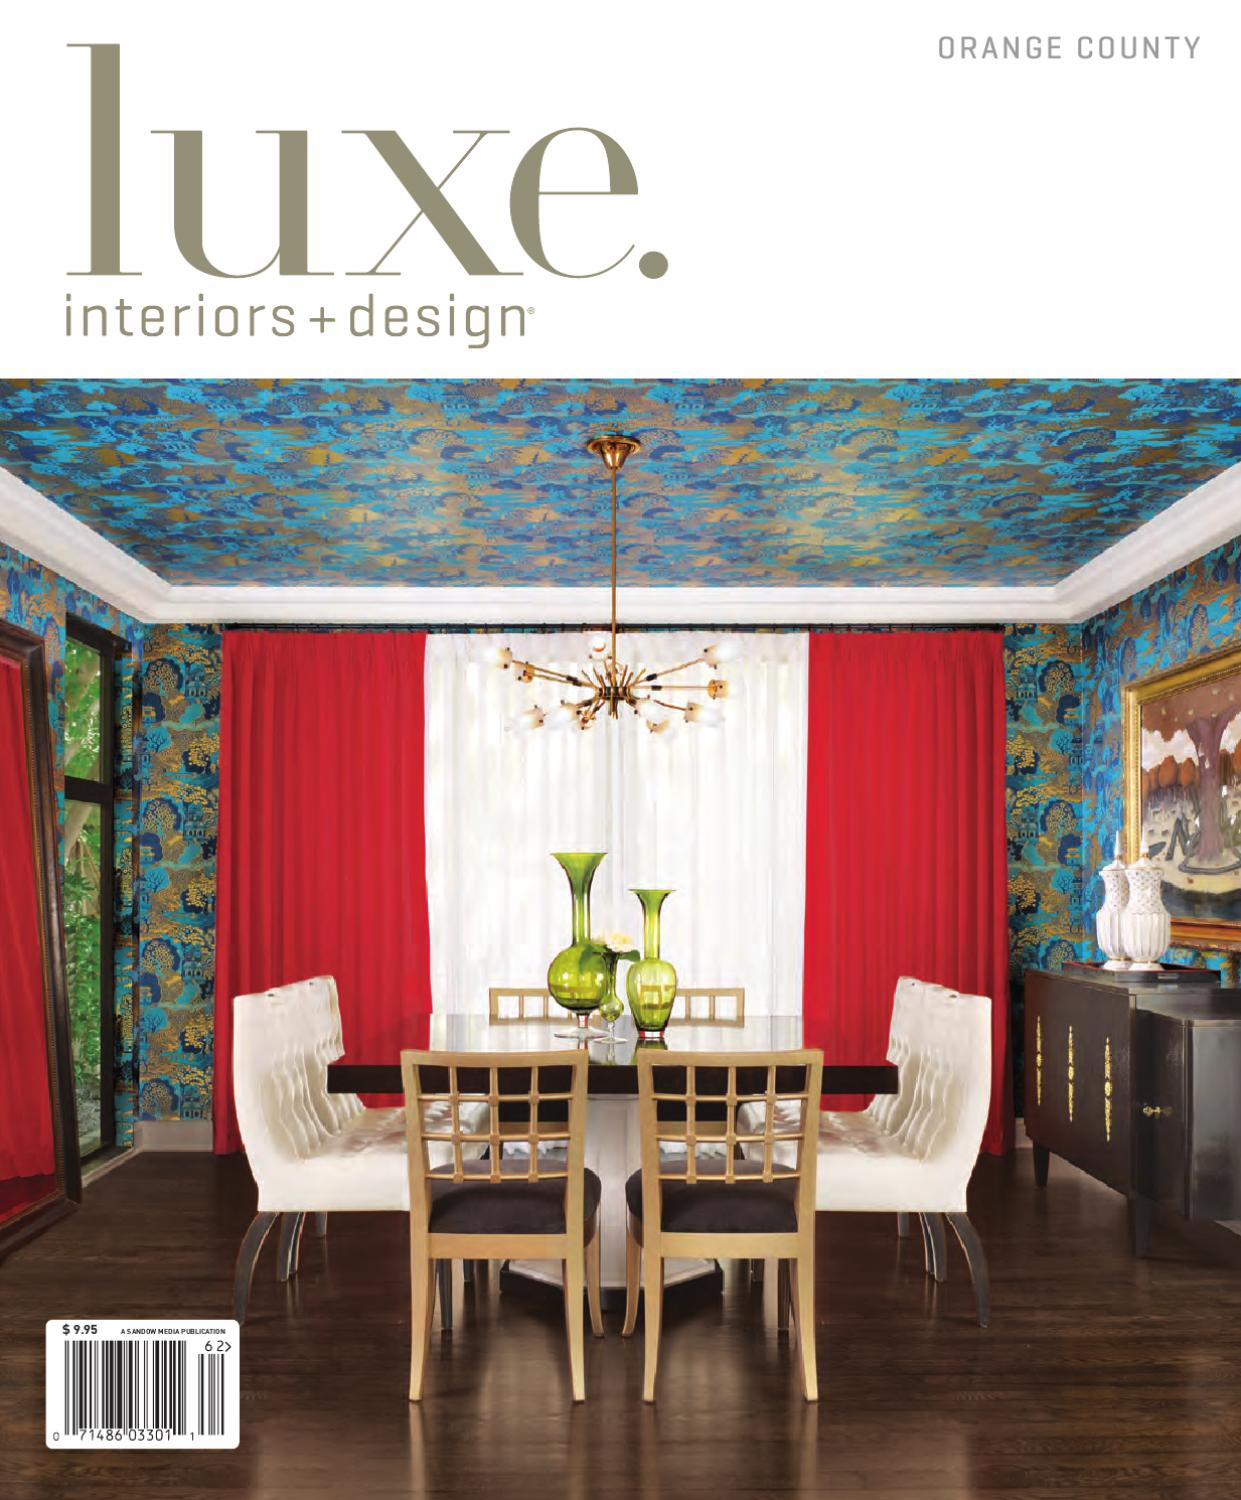 Luxe Interior Design Orange County By Sandow Media Issuu